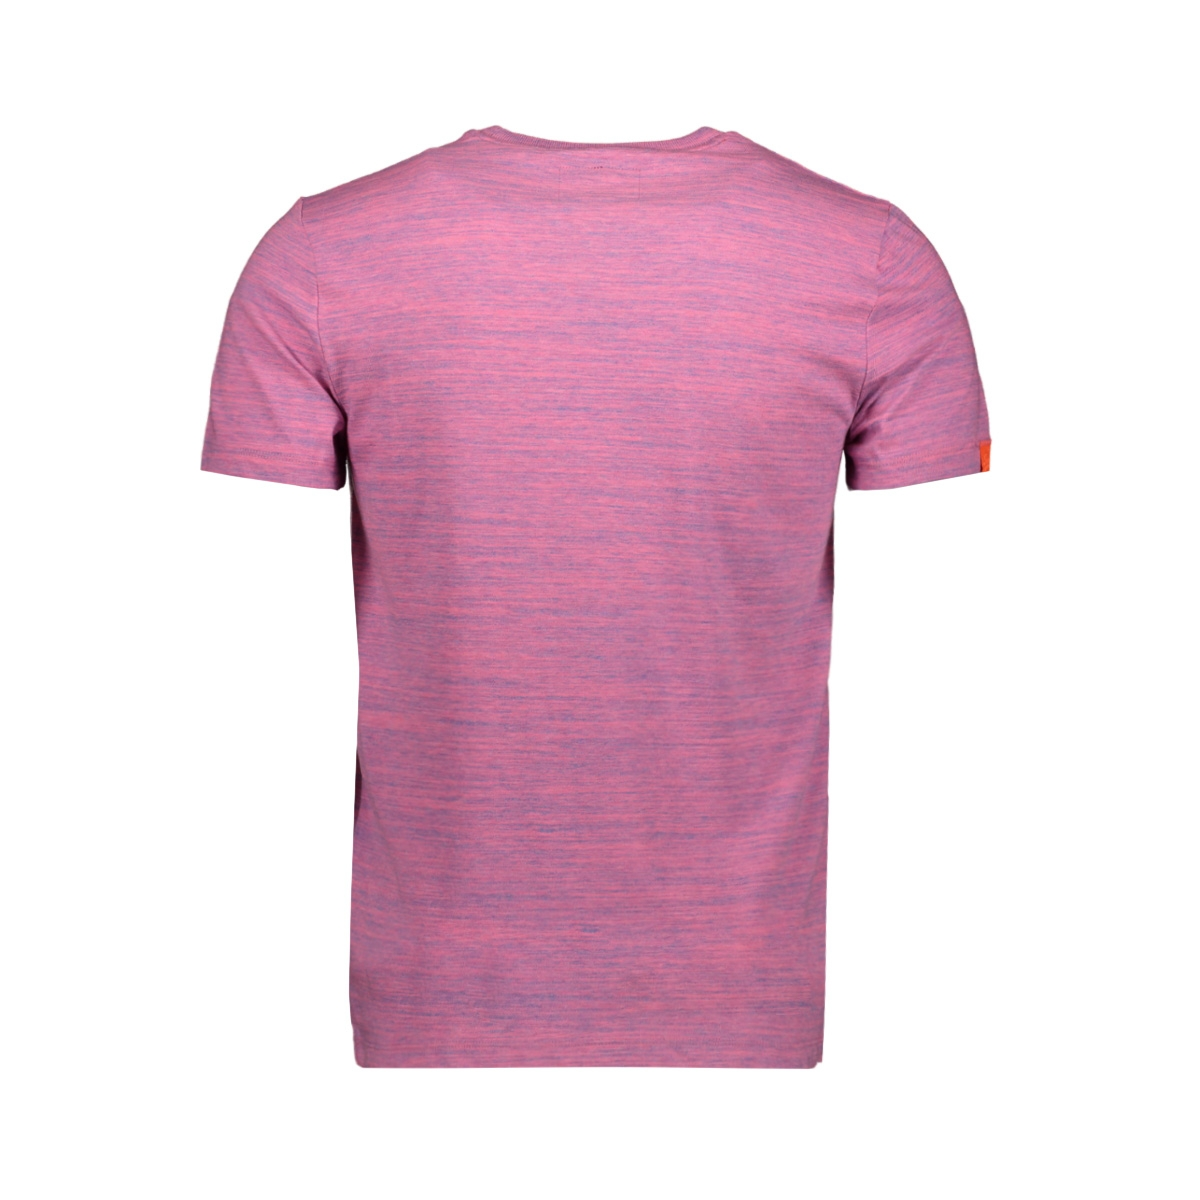 ol vintage emb crew m1010024a superdry t-shirt neon pink space dye